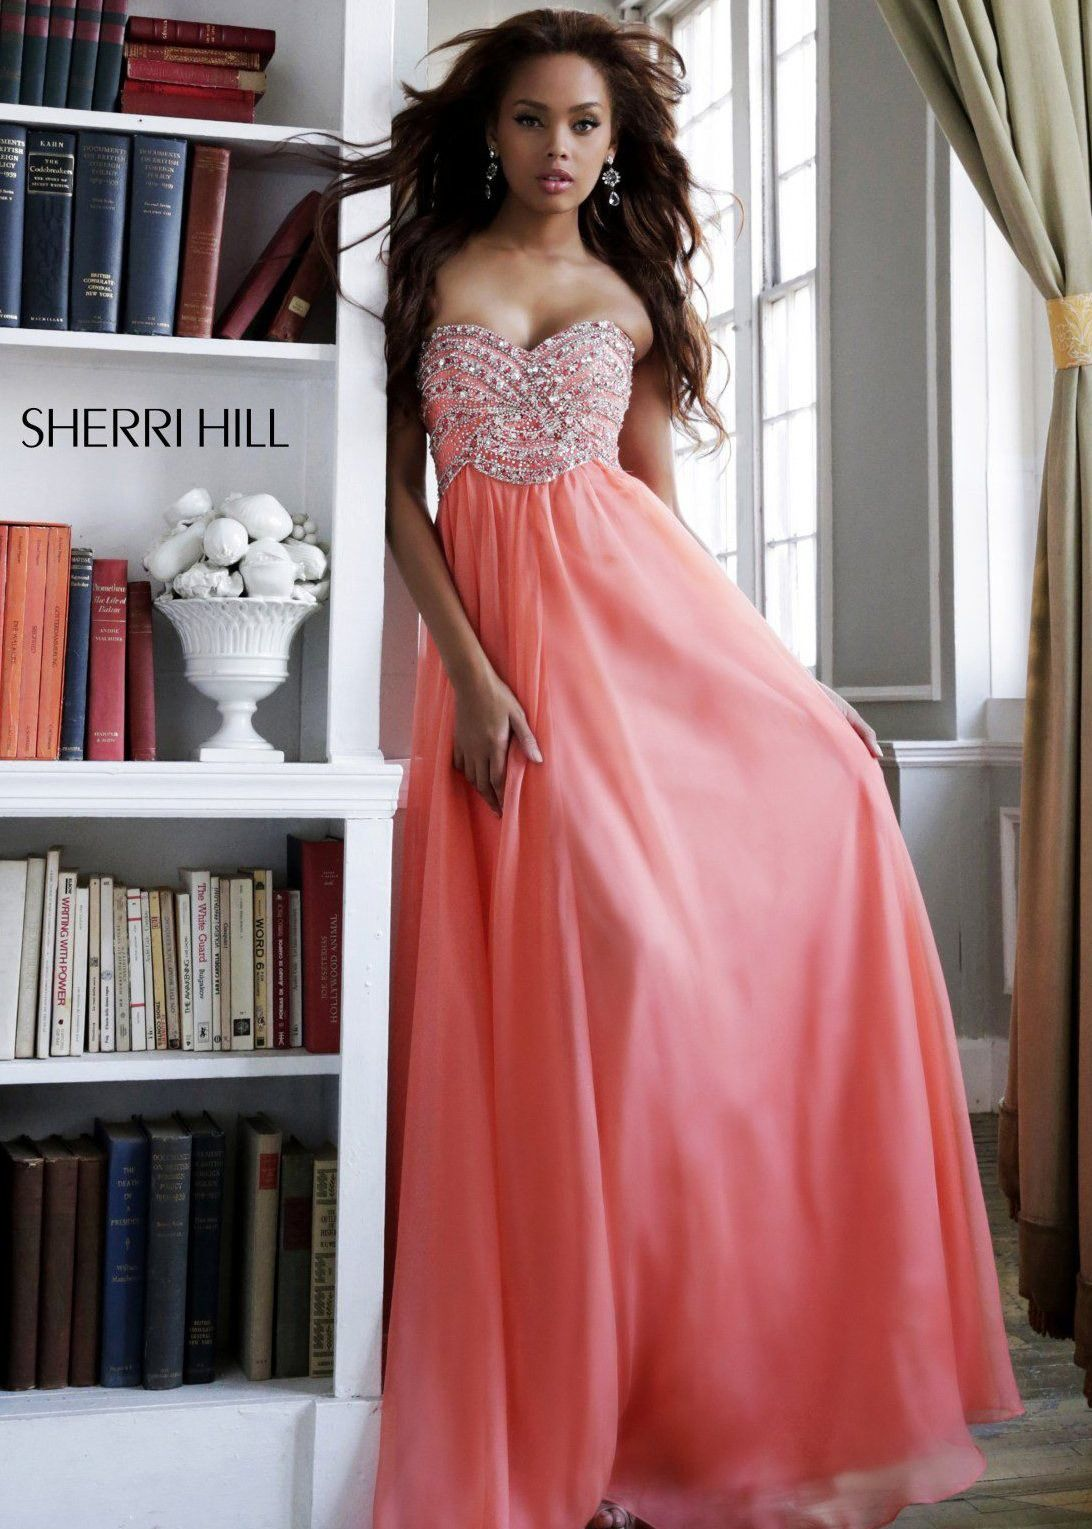 Pin by Evelin Love on Sherri Hill | Pinterest